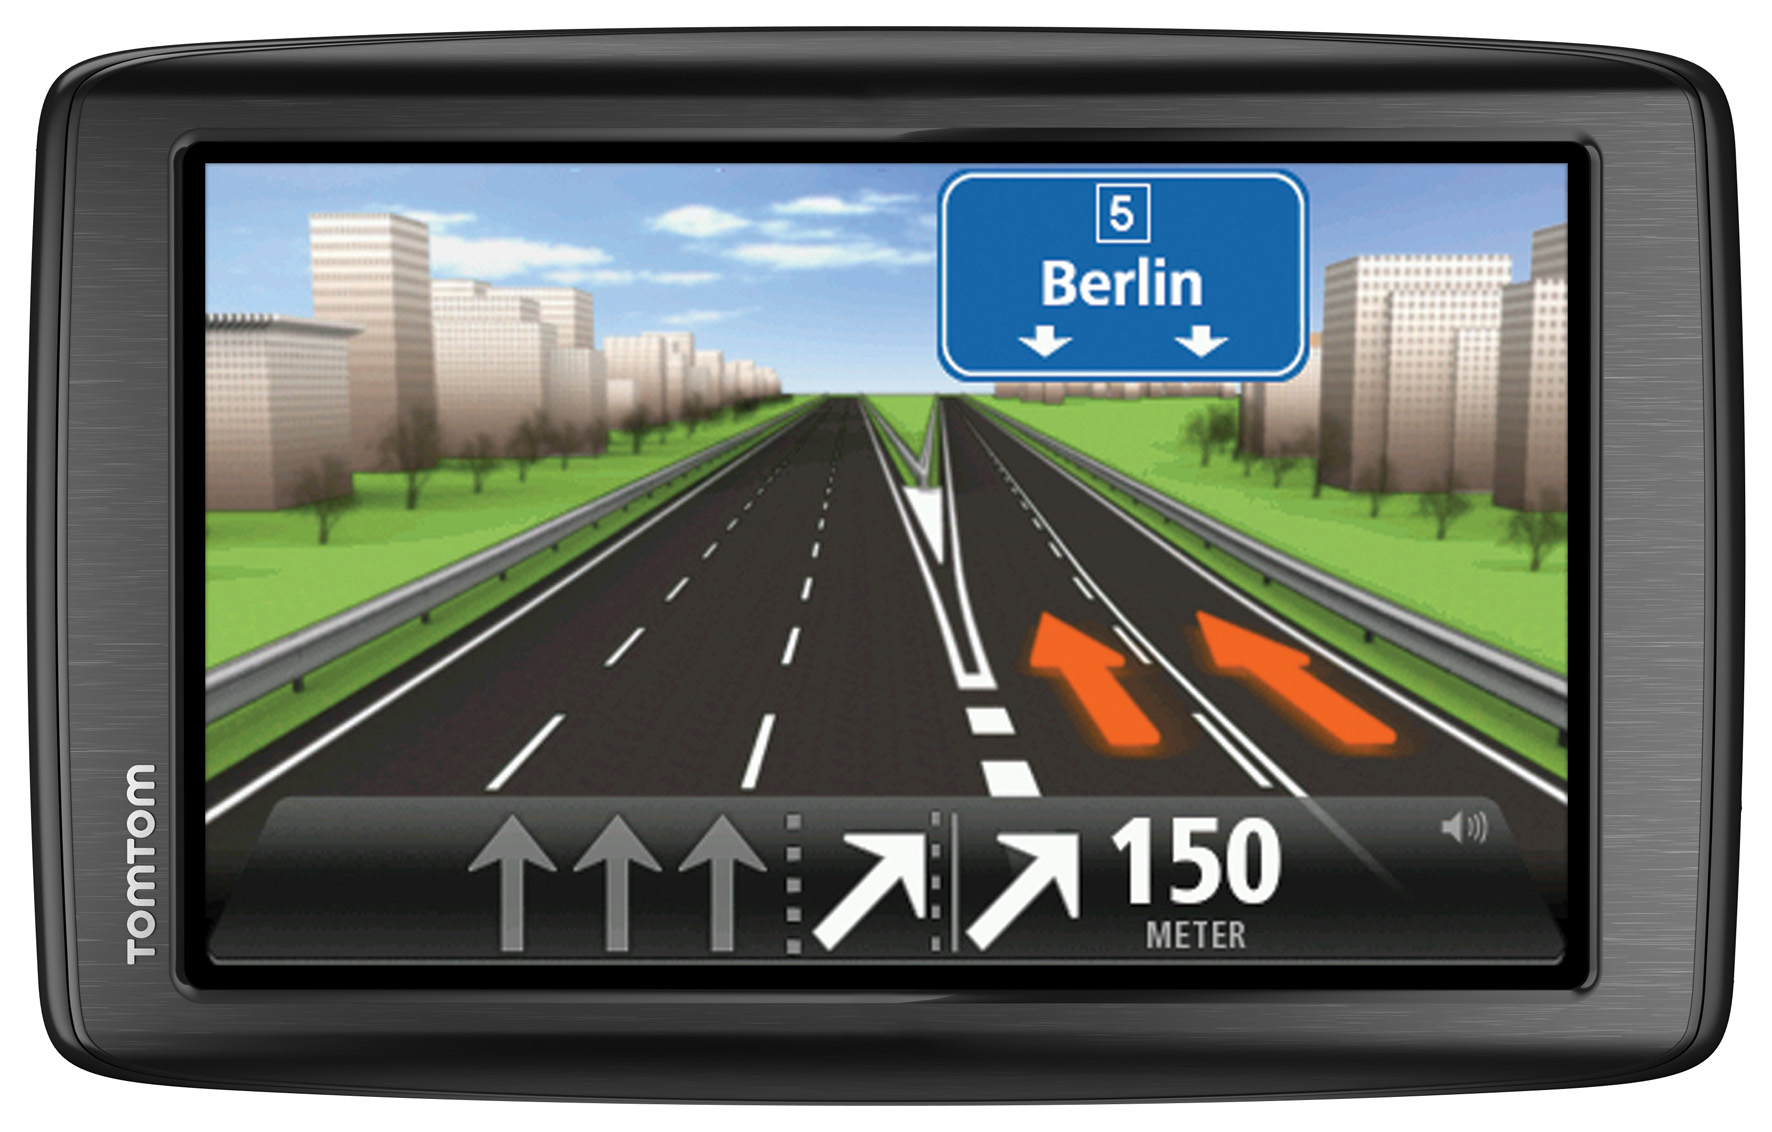 Bis Ende Mai kommen der neue, extragro&#223;e TomTom Start 60 mit 15 cm Displaydiagonale f&#252;r 199 Euro...